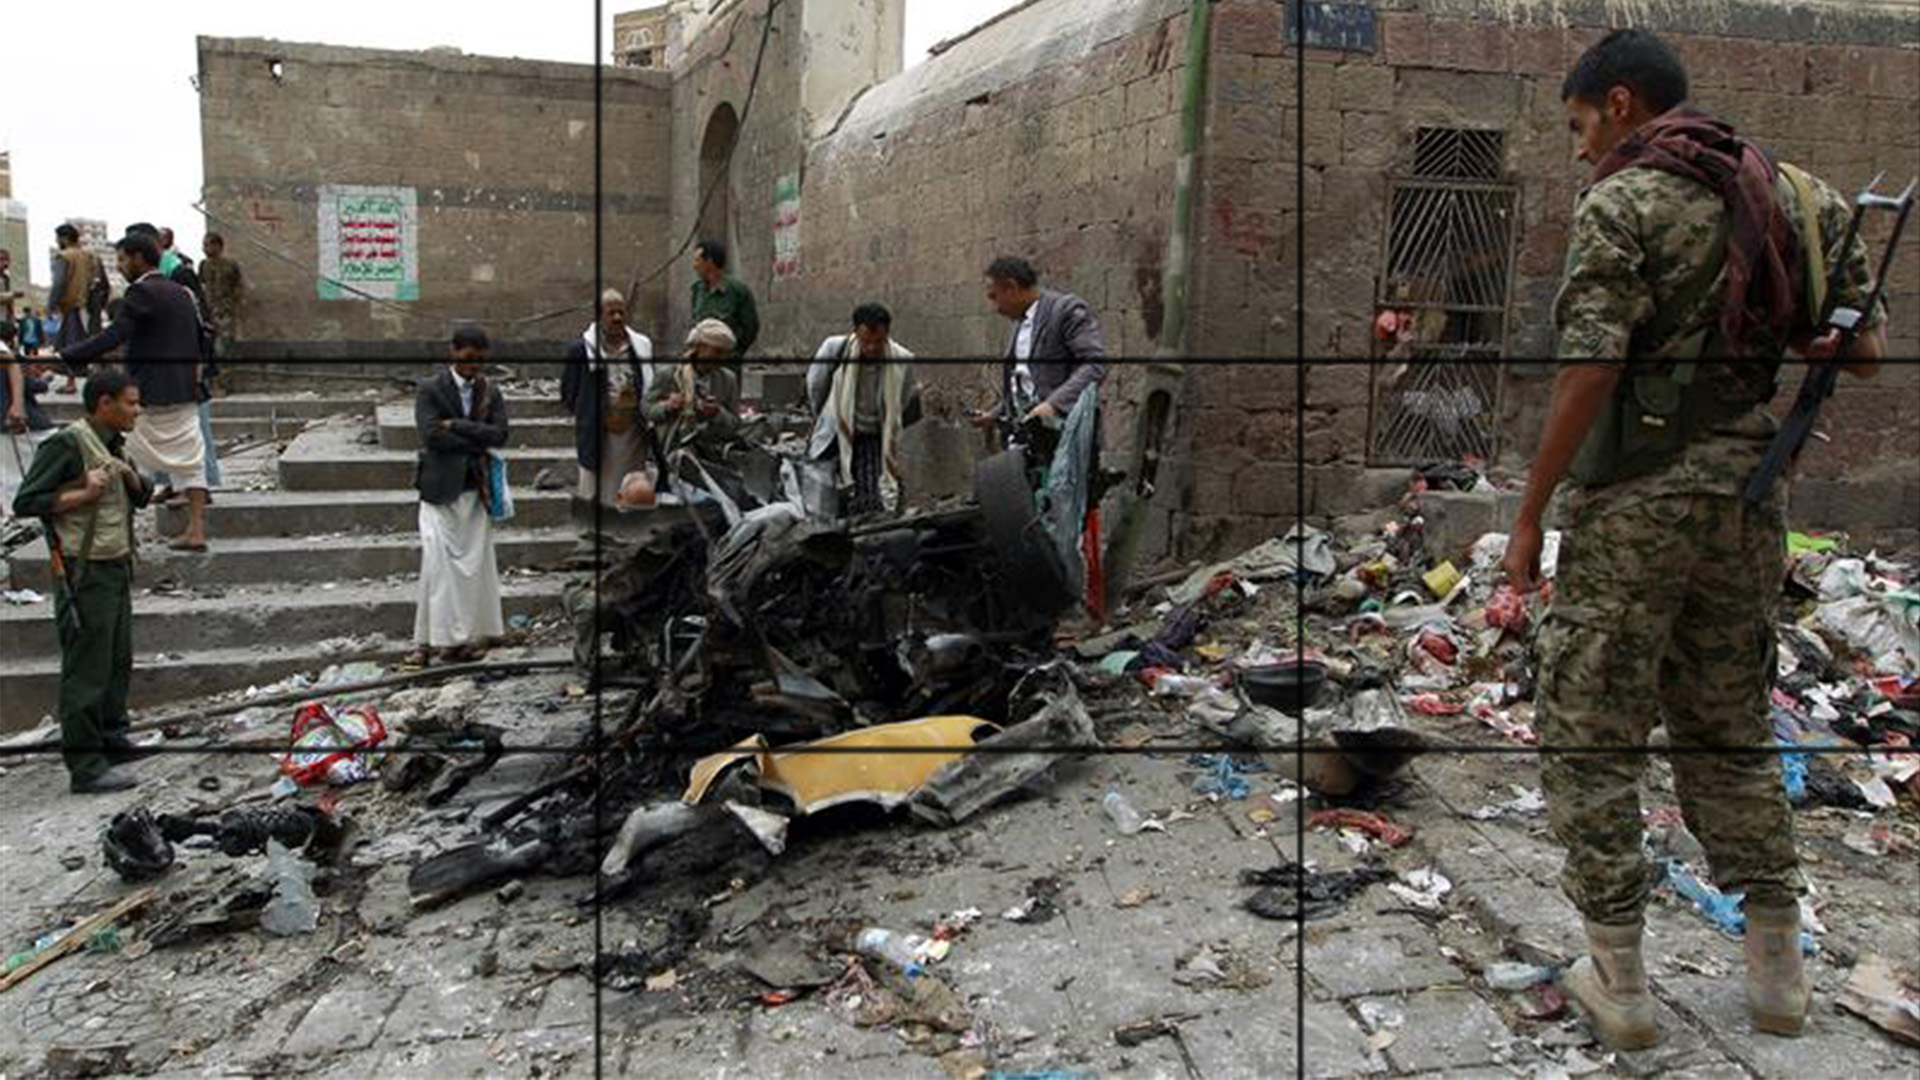 Photo of Casualties as car bomb explodes near Shia mosque in Yemen capital